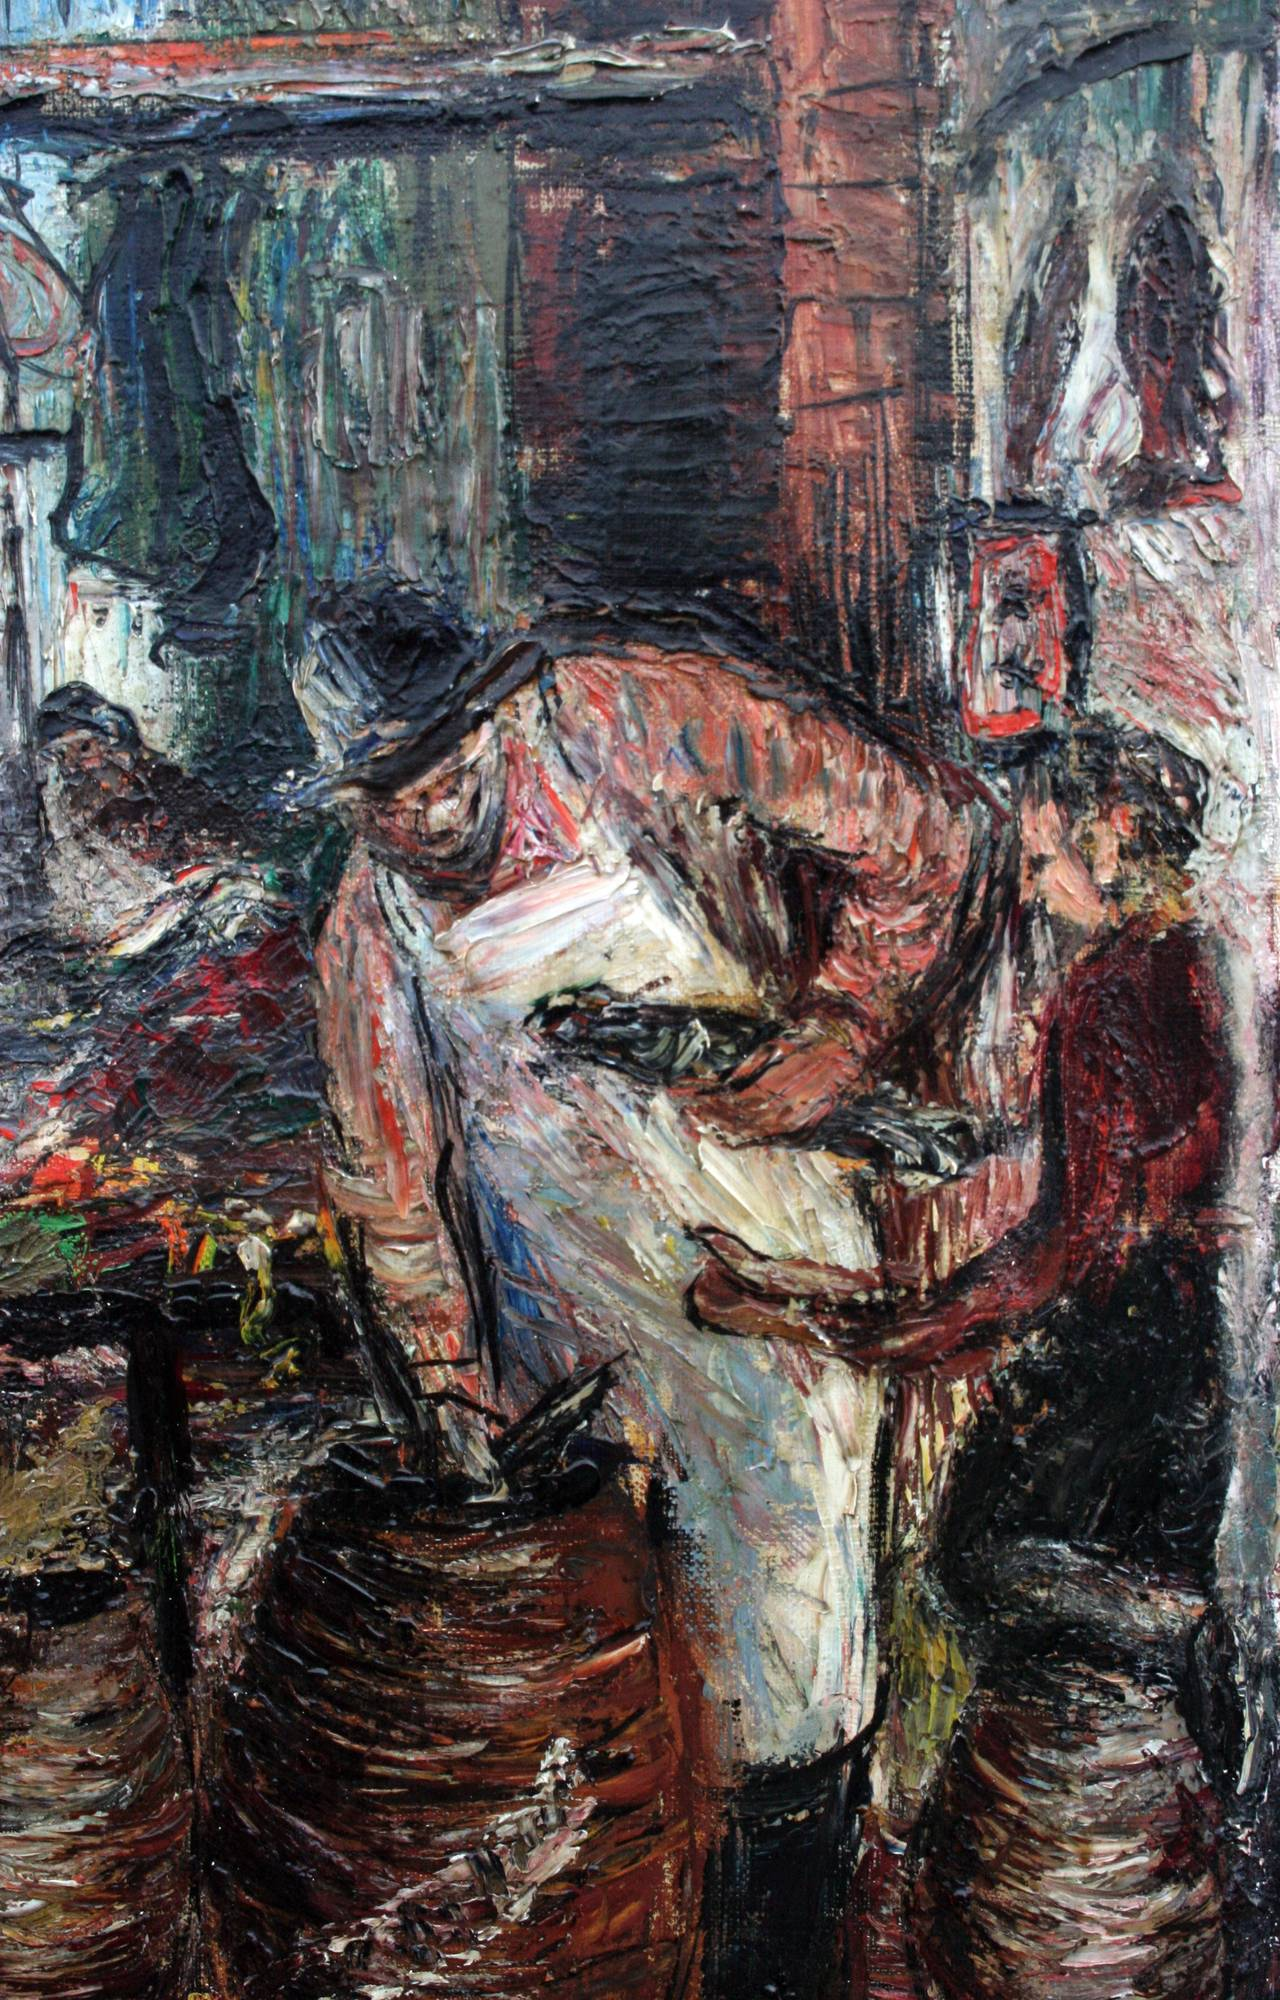 The Fishmonger For Sale 2